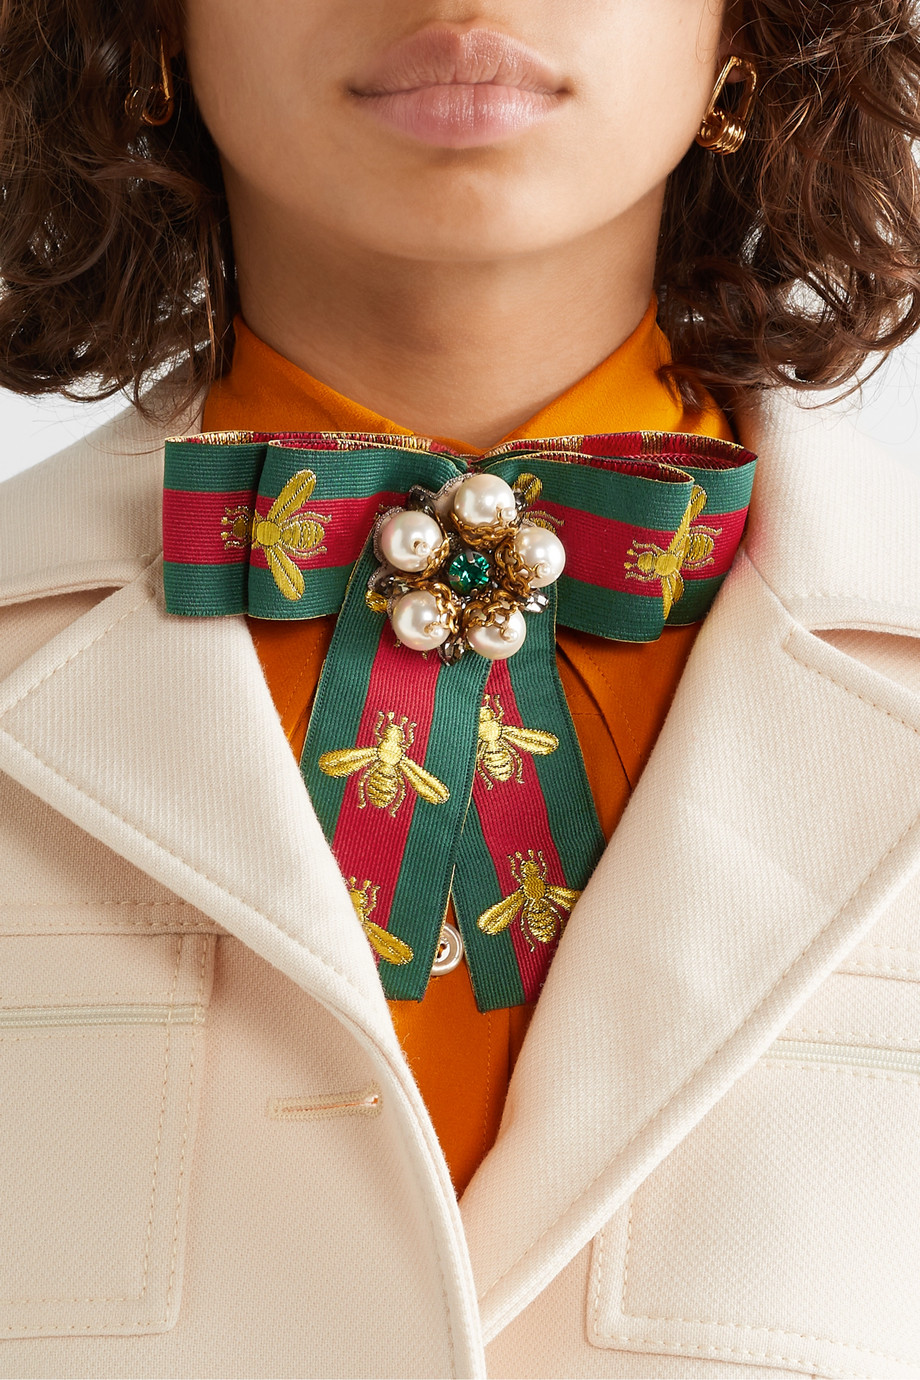 Gucci Broche en gros-grain à broderies et à ornements